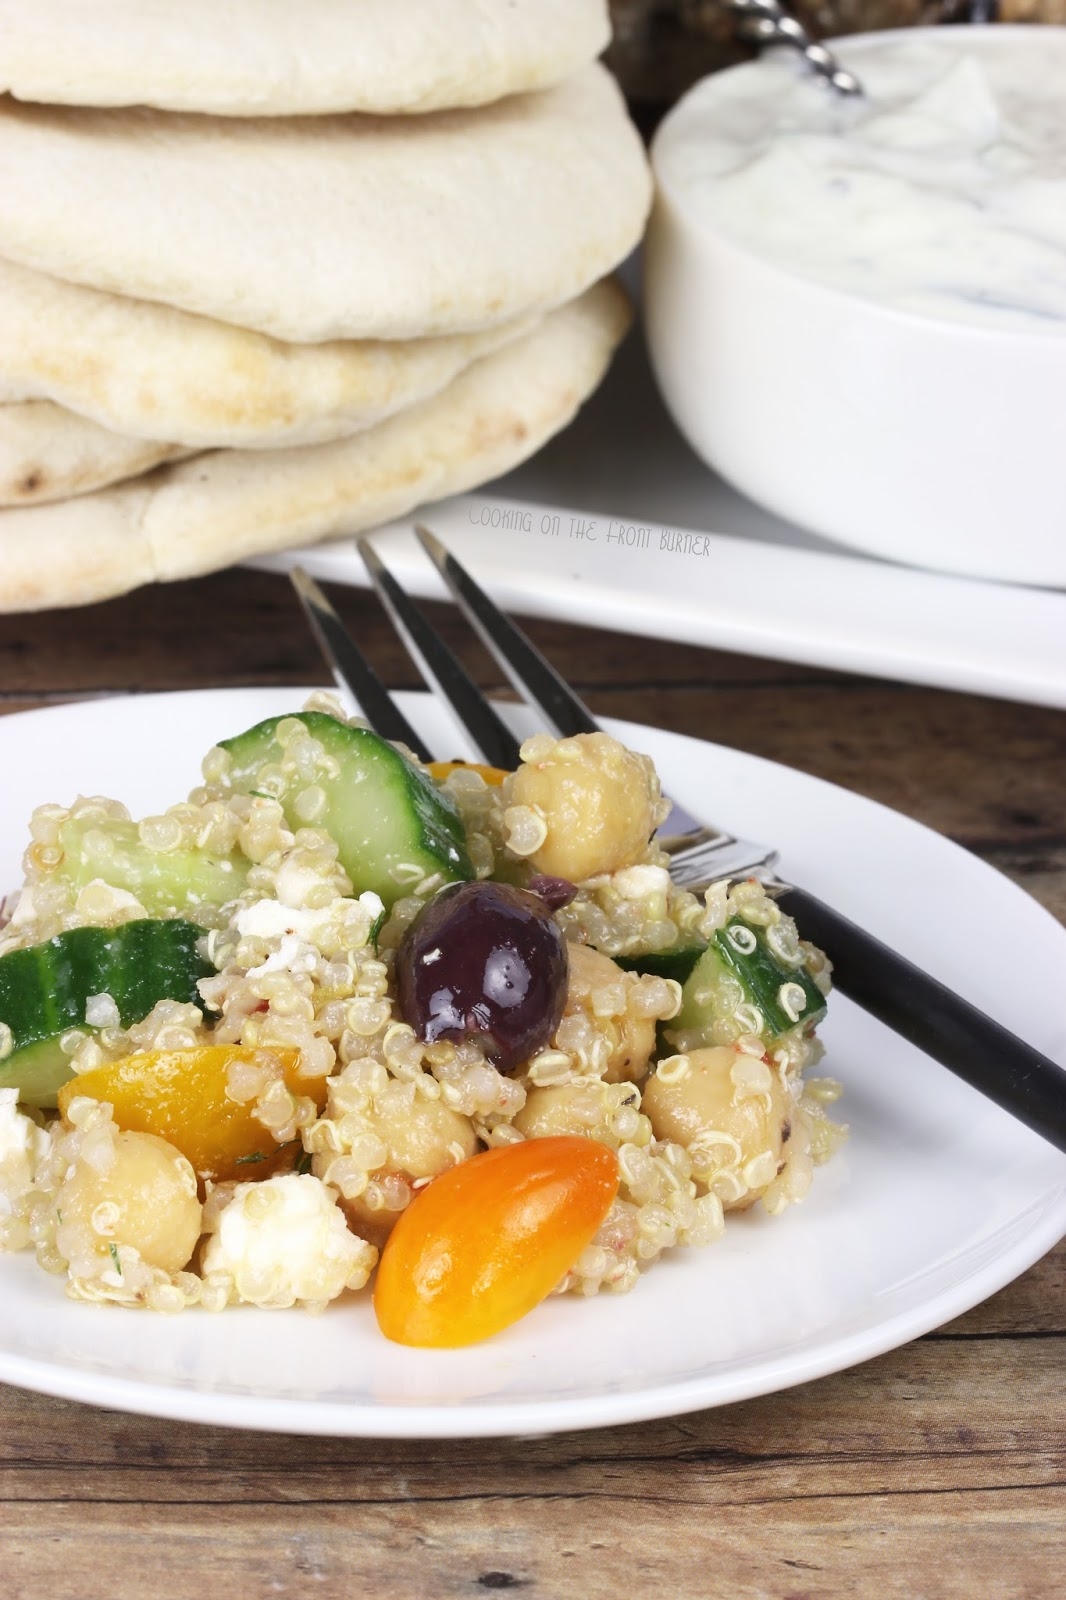 Mediterranean Quinoa Salad | Cooking on the Front Burner #greeksalad #quinoa